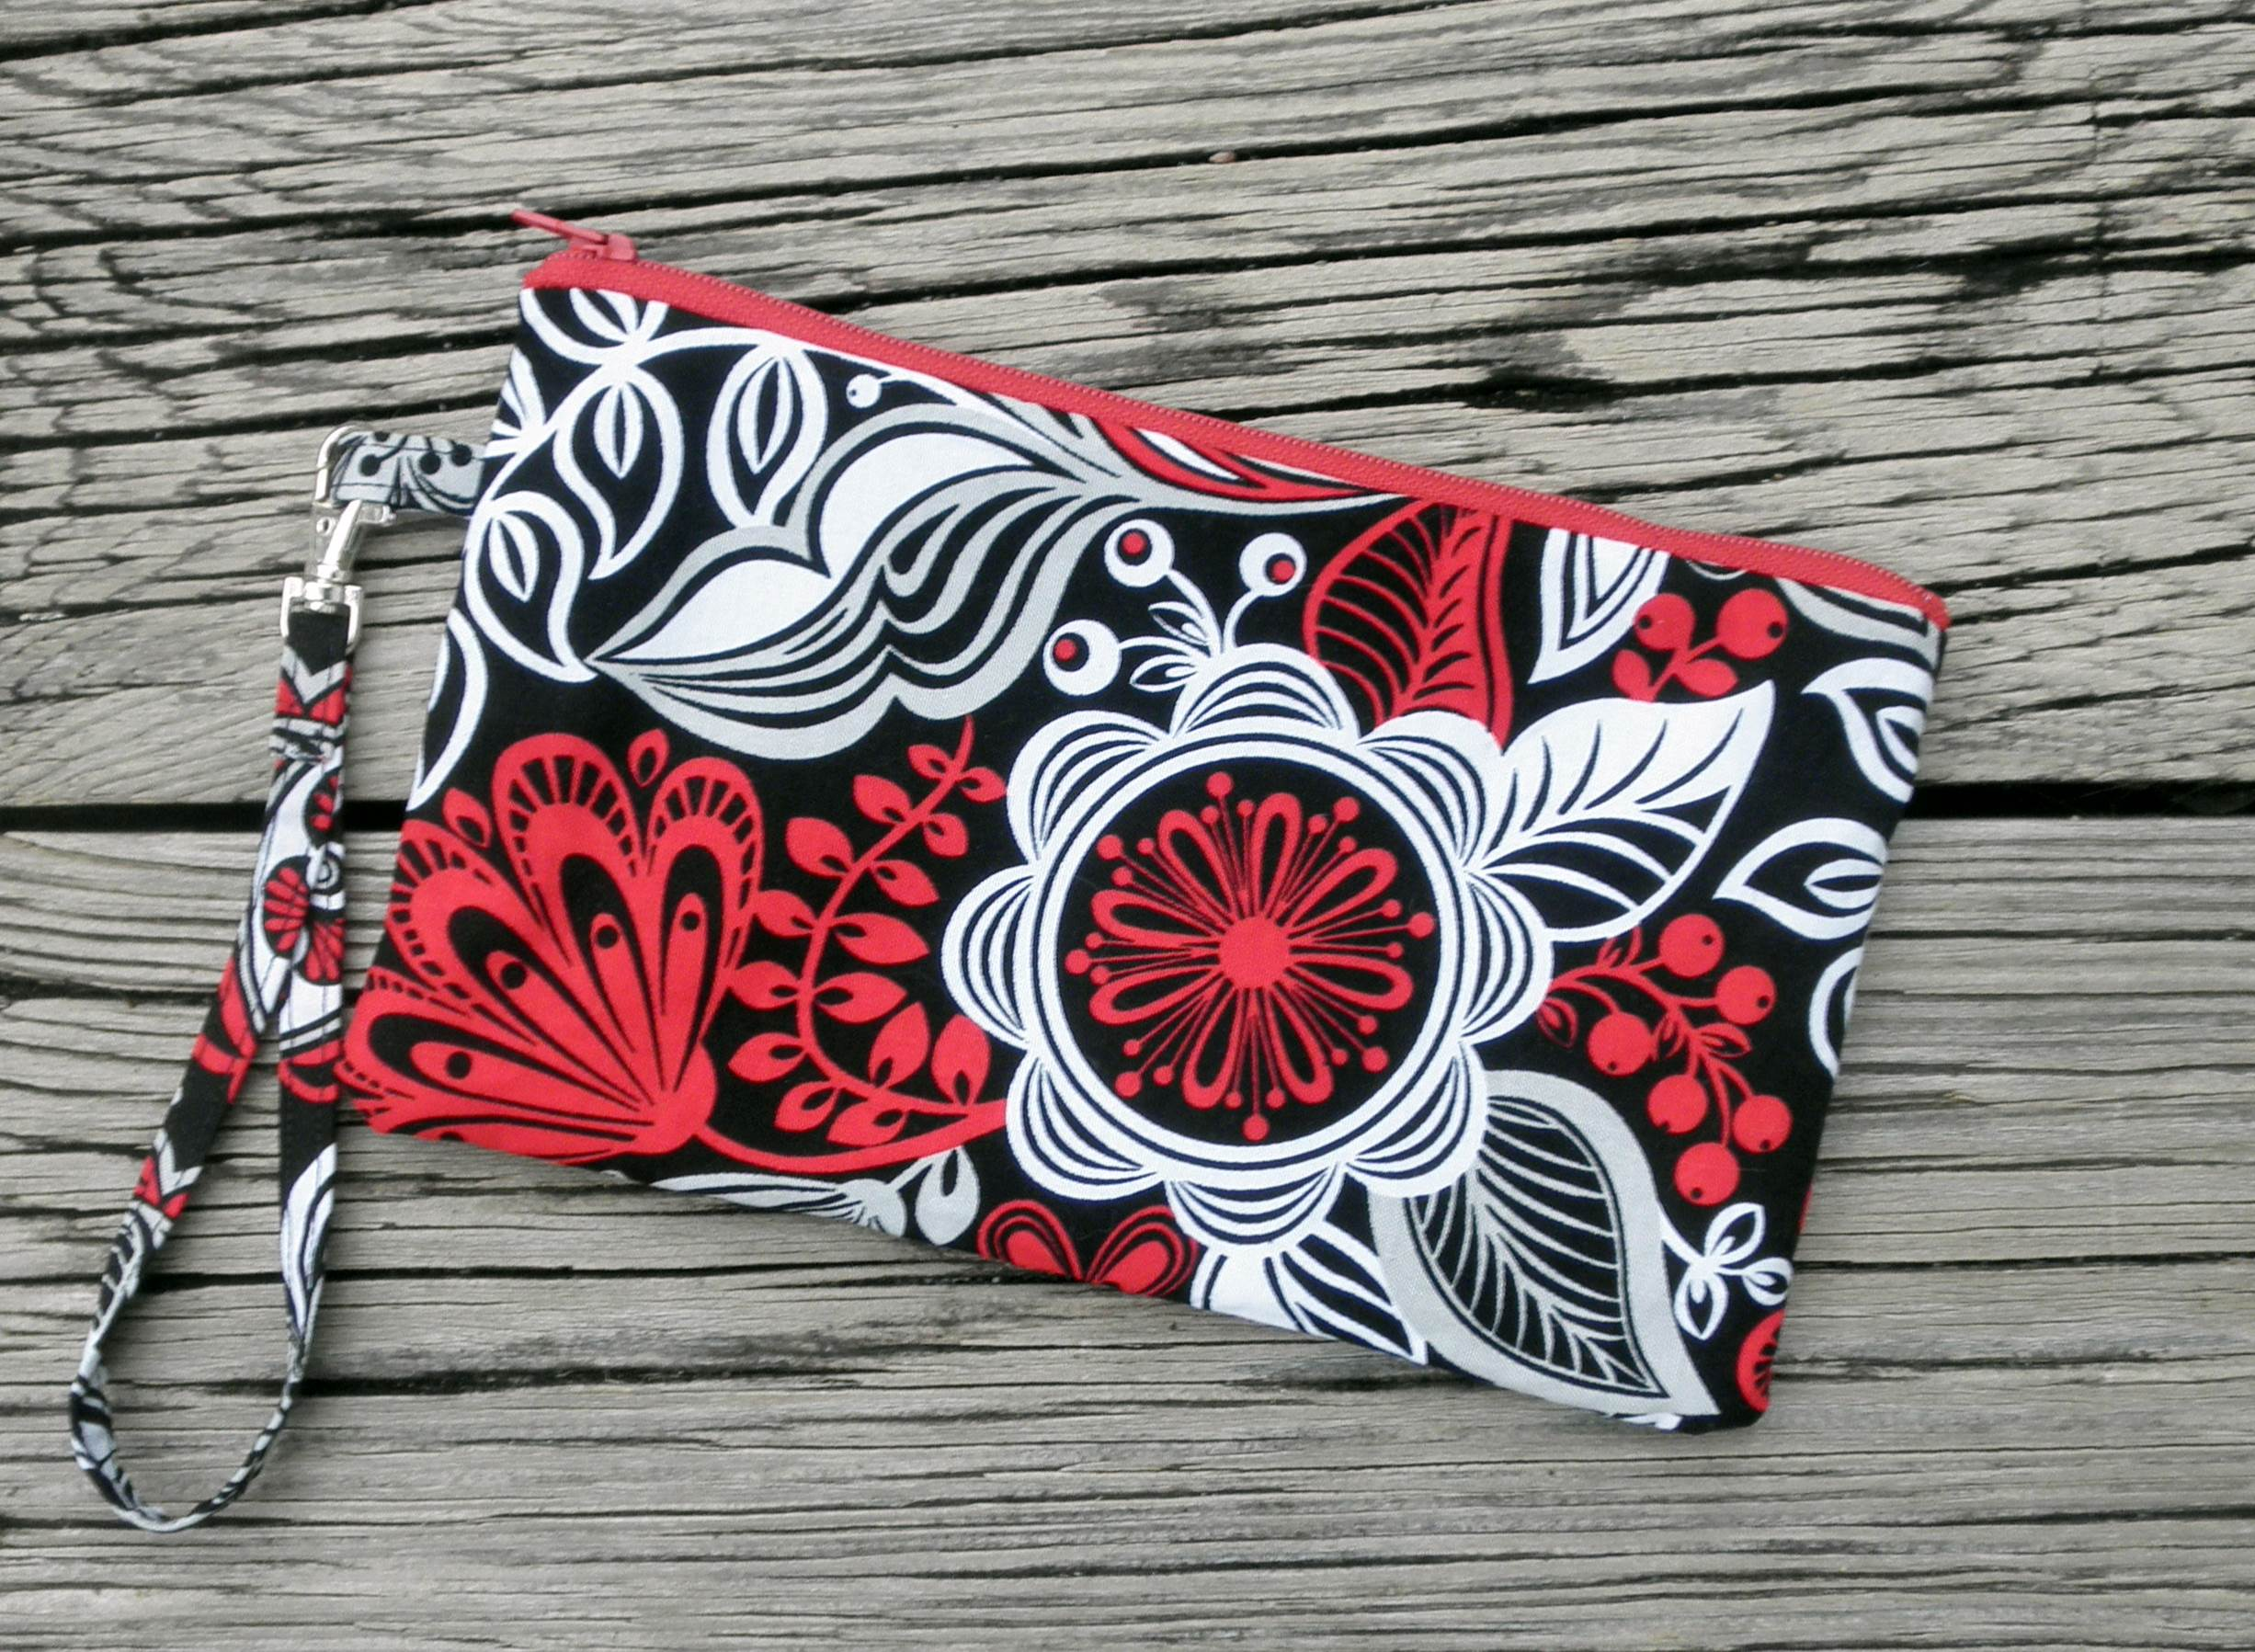 http://ladylack.storenvy.com/collections/380454-wristlets/products/3648160-red-black-and-grey-flower-wristlet